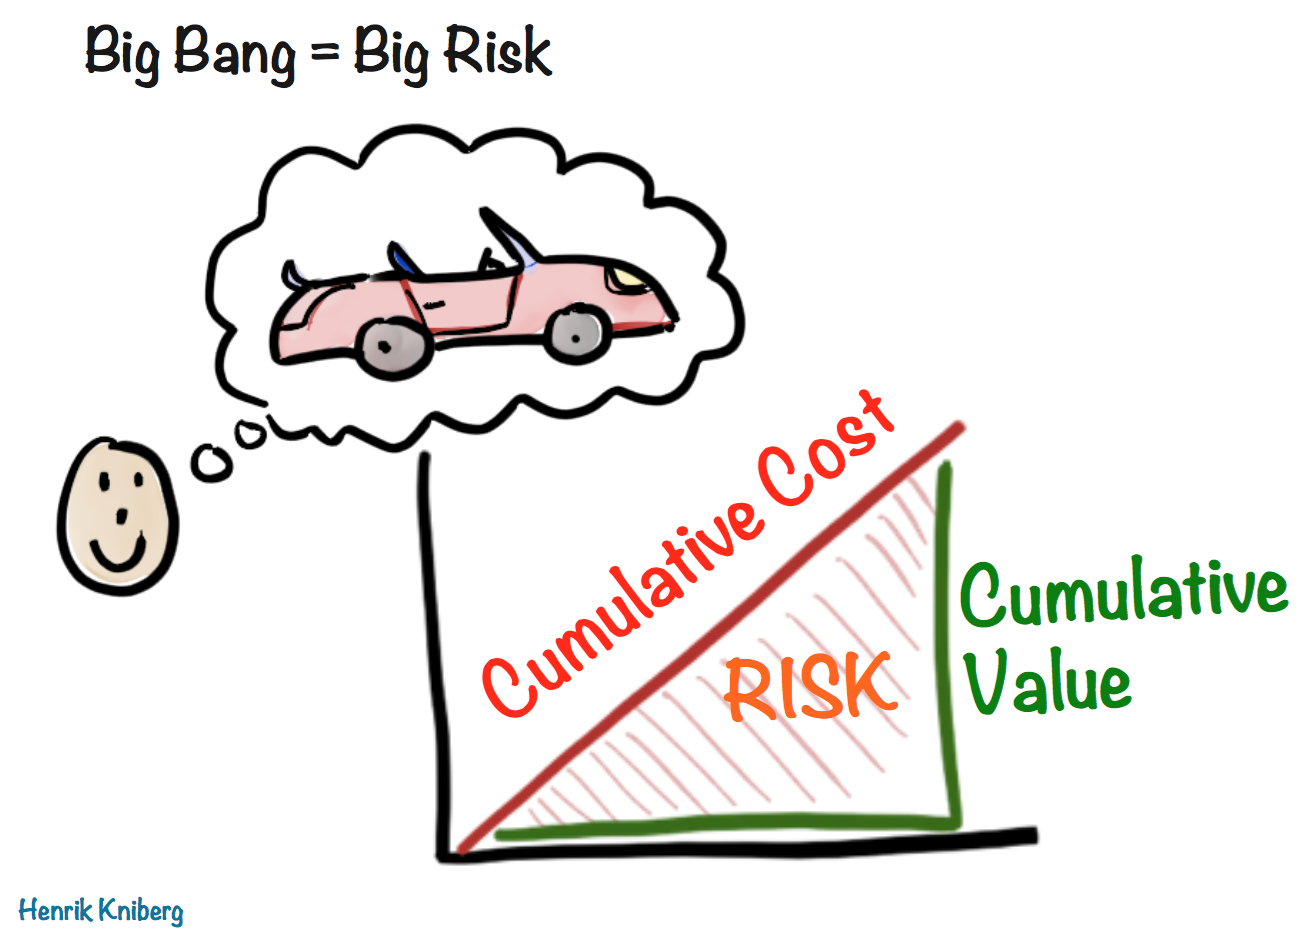 Big Bang is Big Risk